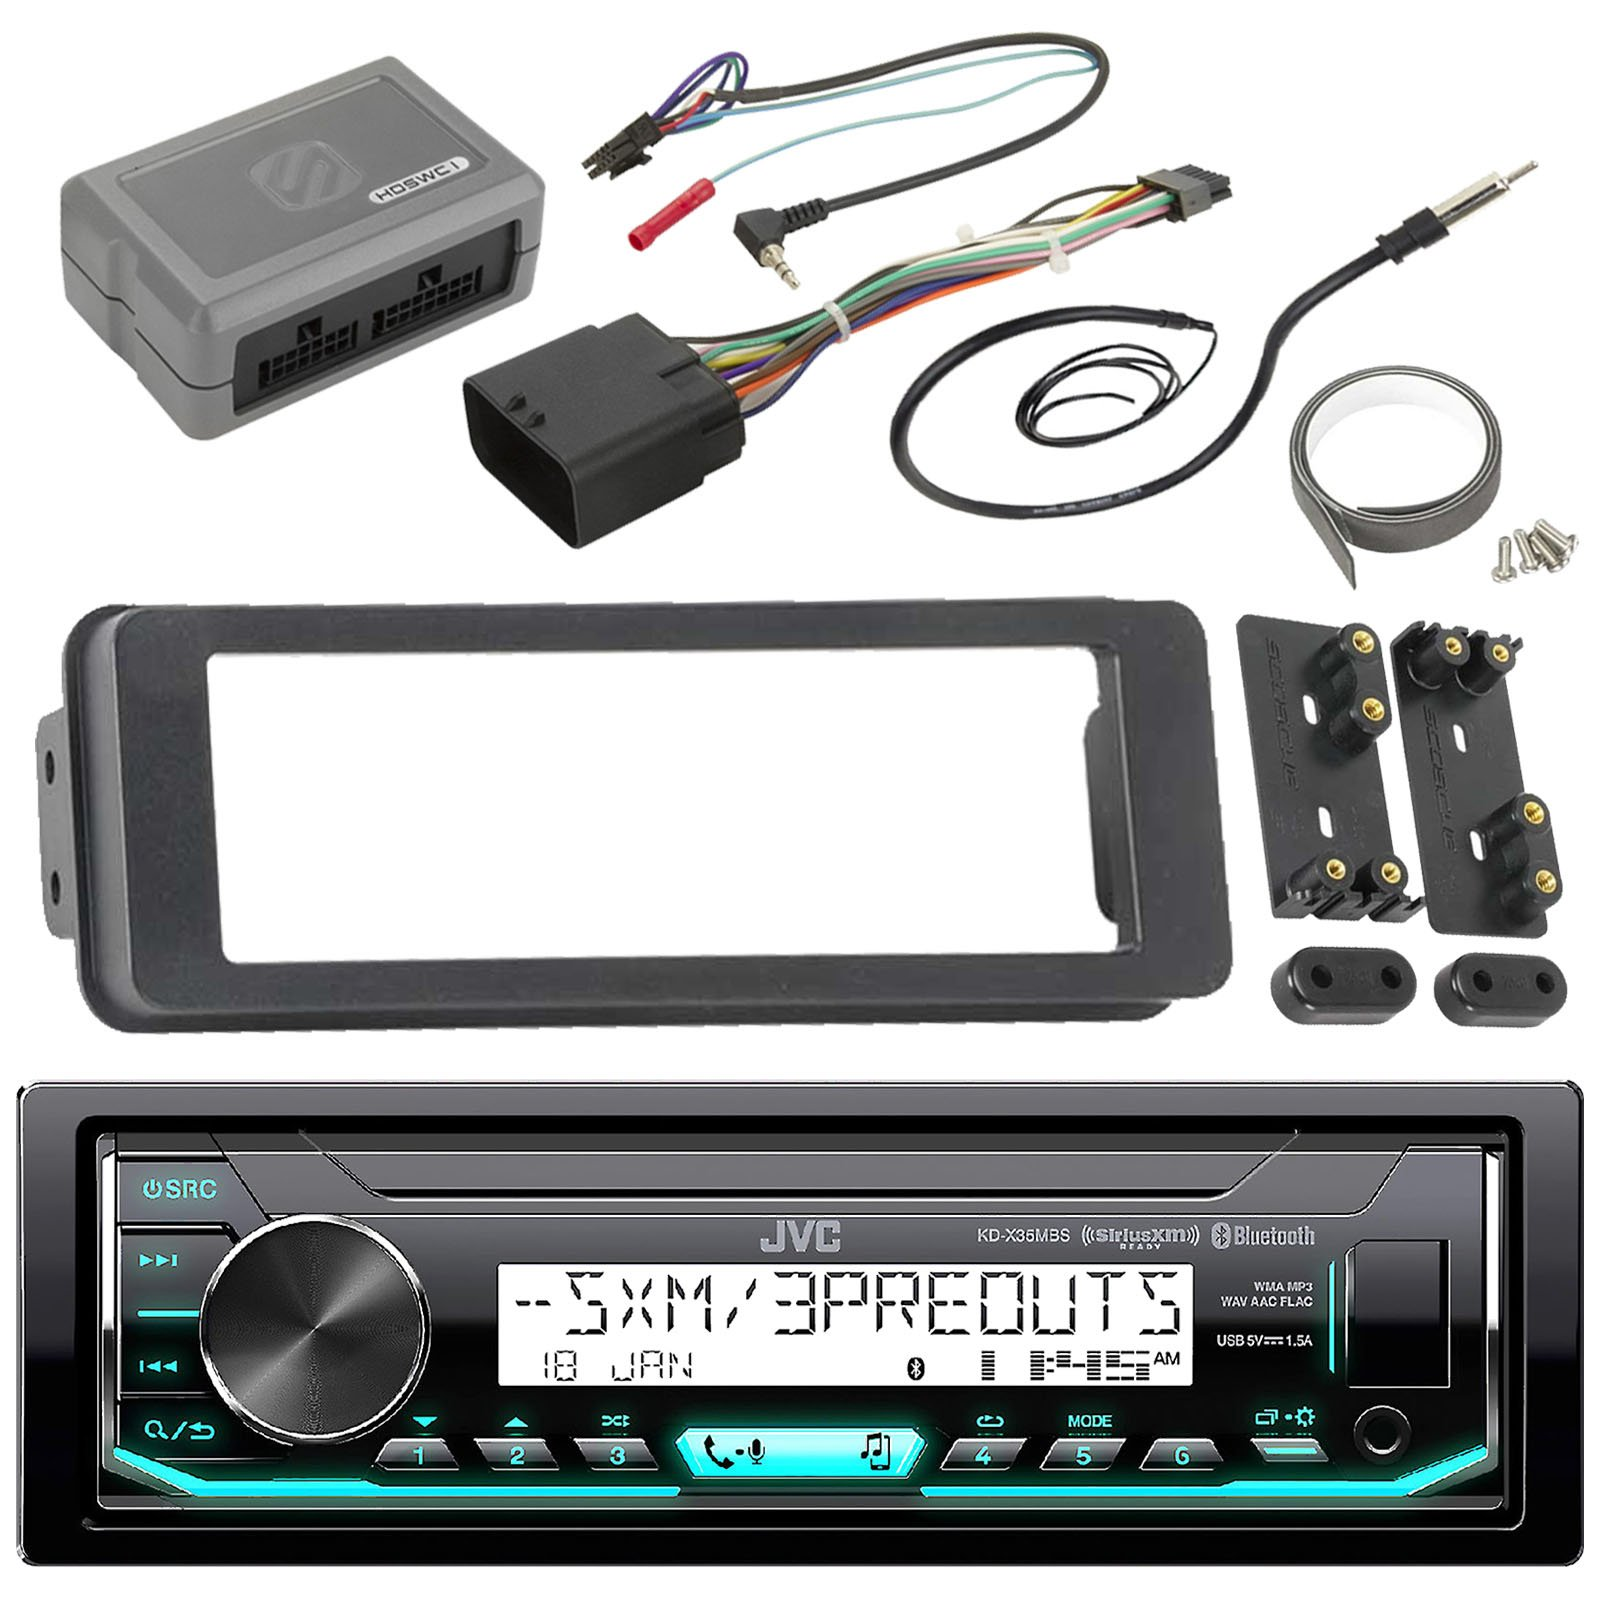 JVC KDX33MBS Marine Radio Stereo Receiver For 1998 2013 Harley Davidson Touring Filth Flux Fletch Bundle With Scosche Adapter Dash Kit With Handle Bar Control Module + Enrock Wire Antenna by Enrock JVC Scosche